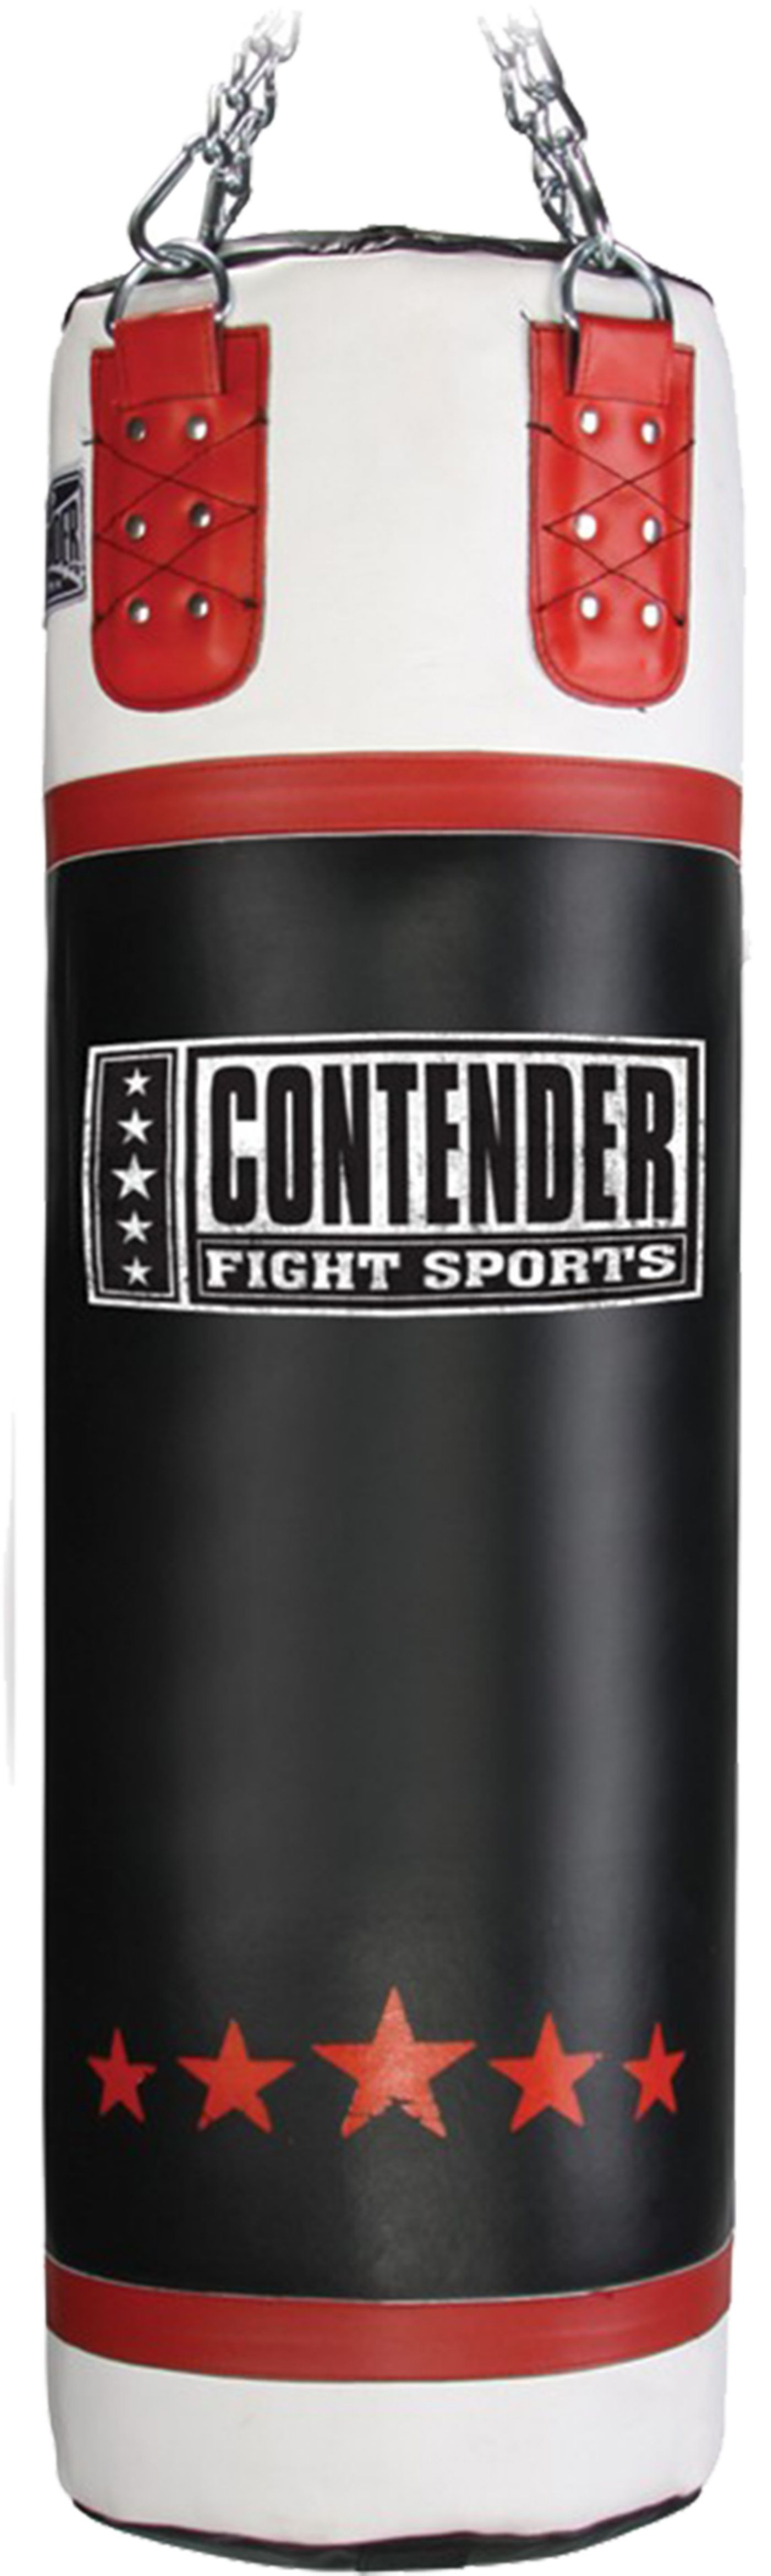 Contender Fight Sports 150 lb. Heavy Bag